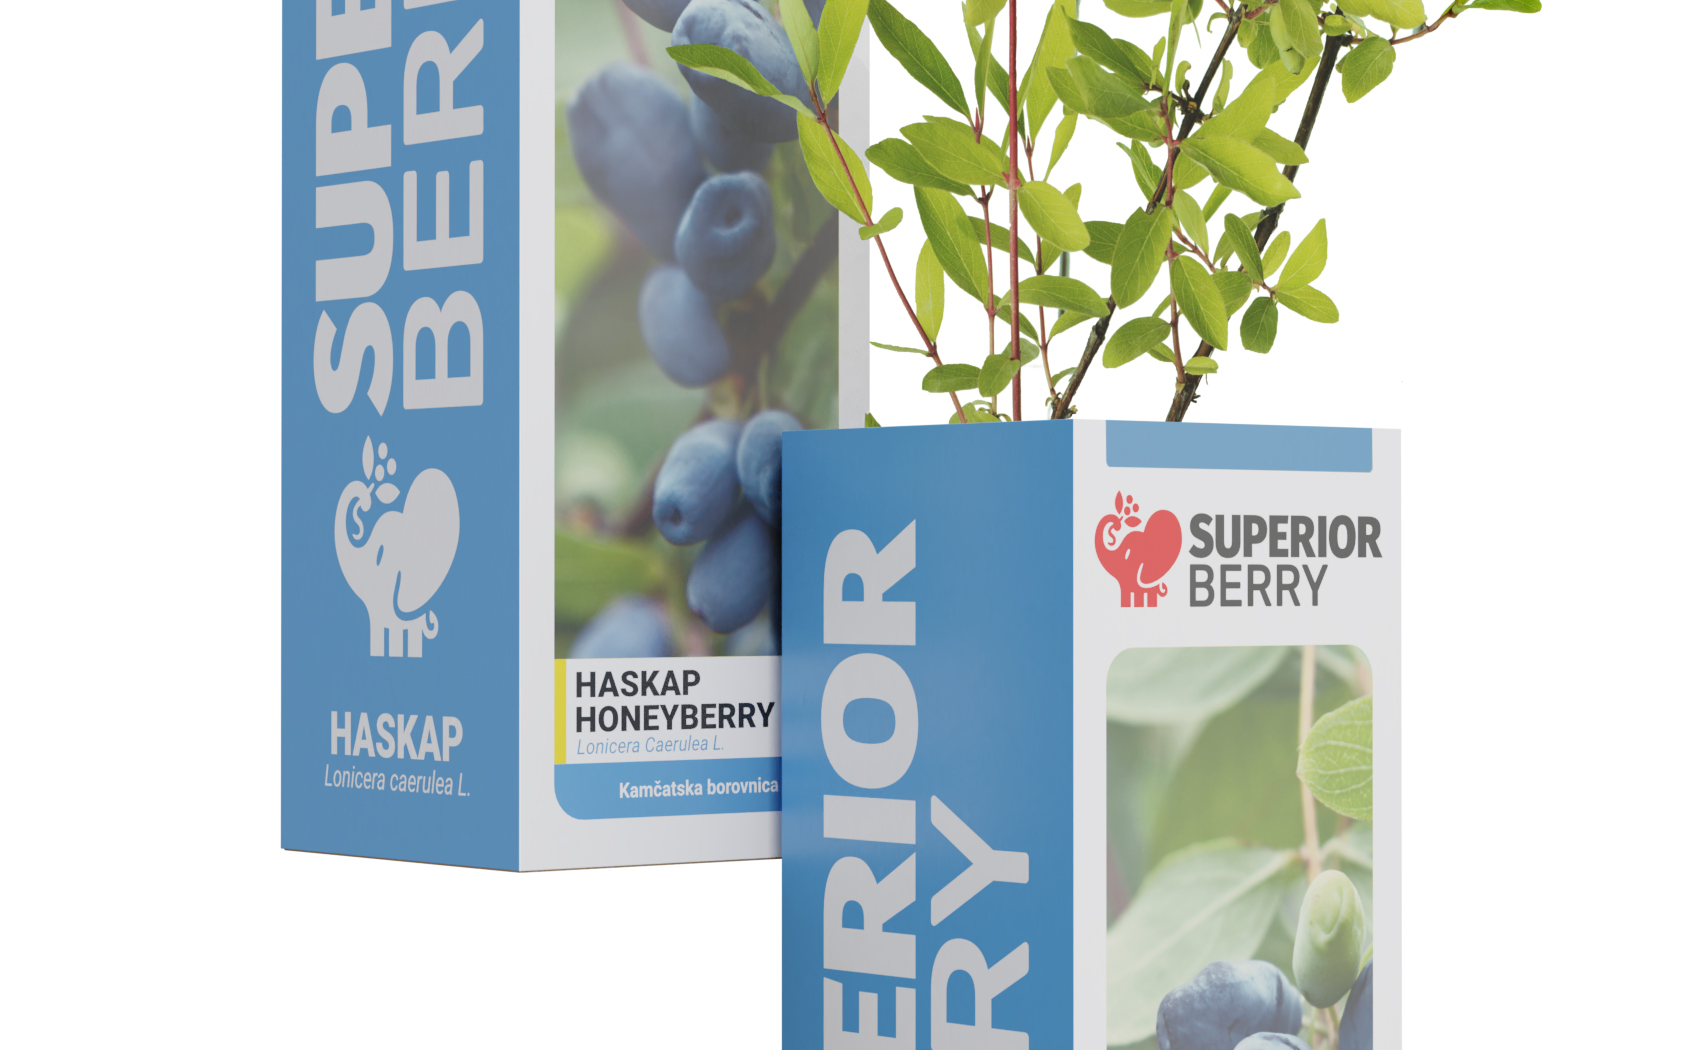 superior berry honeyberry seedling in the box